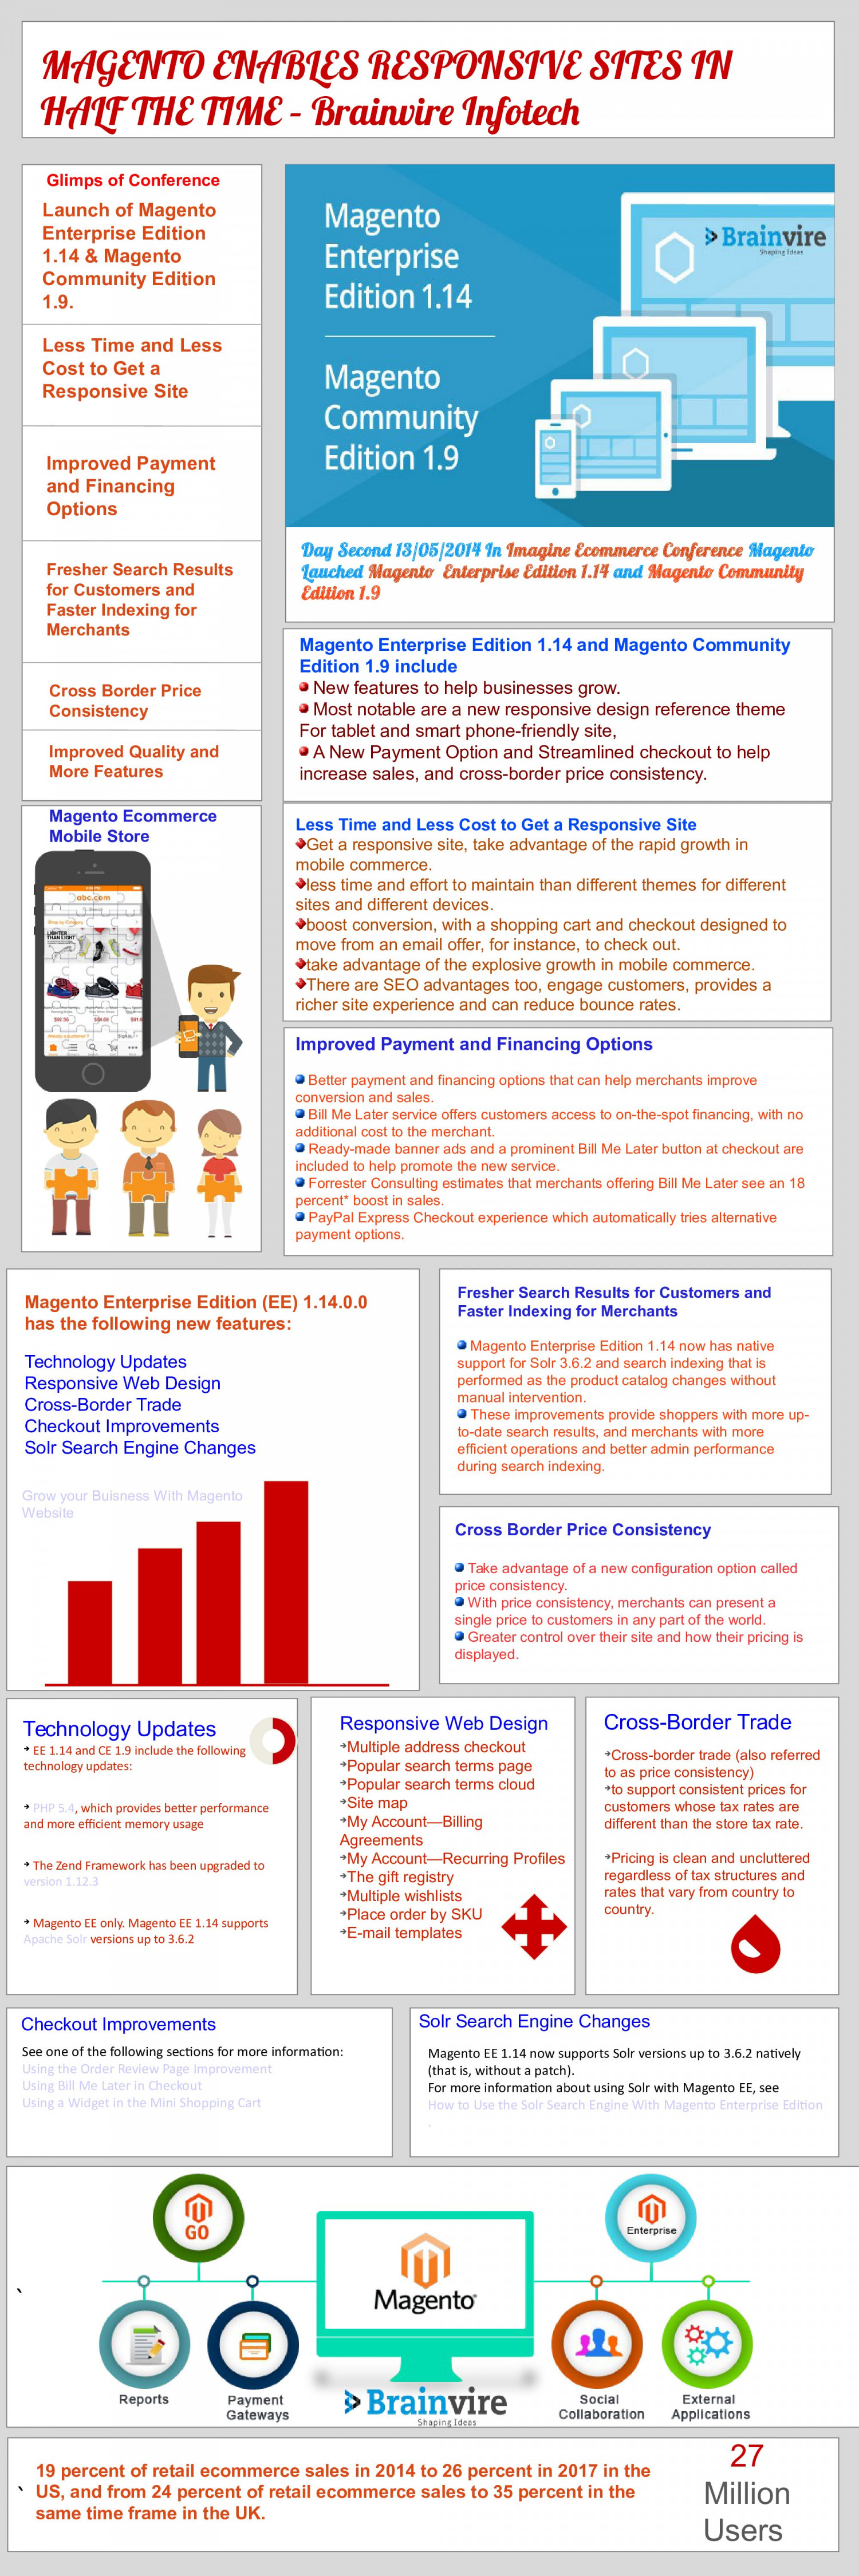 New Magento Enterprise Edition 1.14 Magento Community Edition 1.9 lauched  Infographic